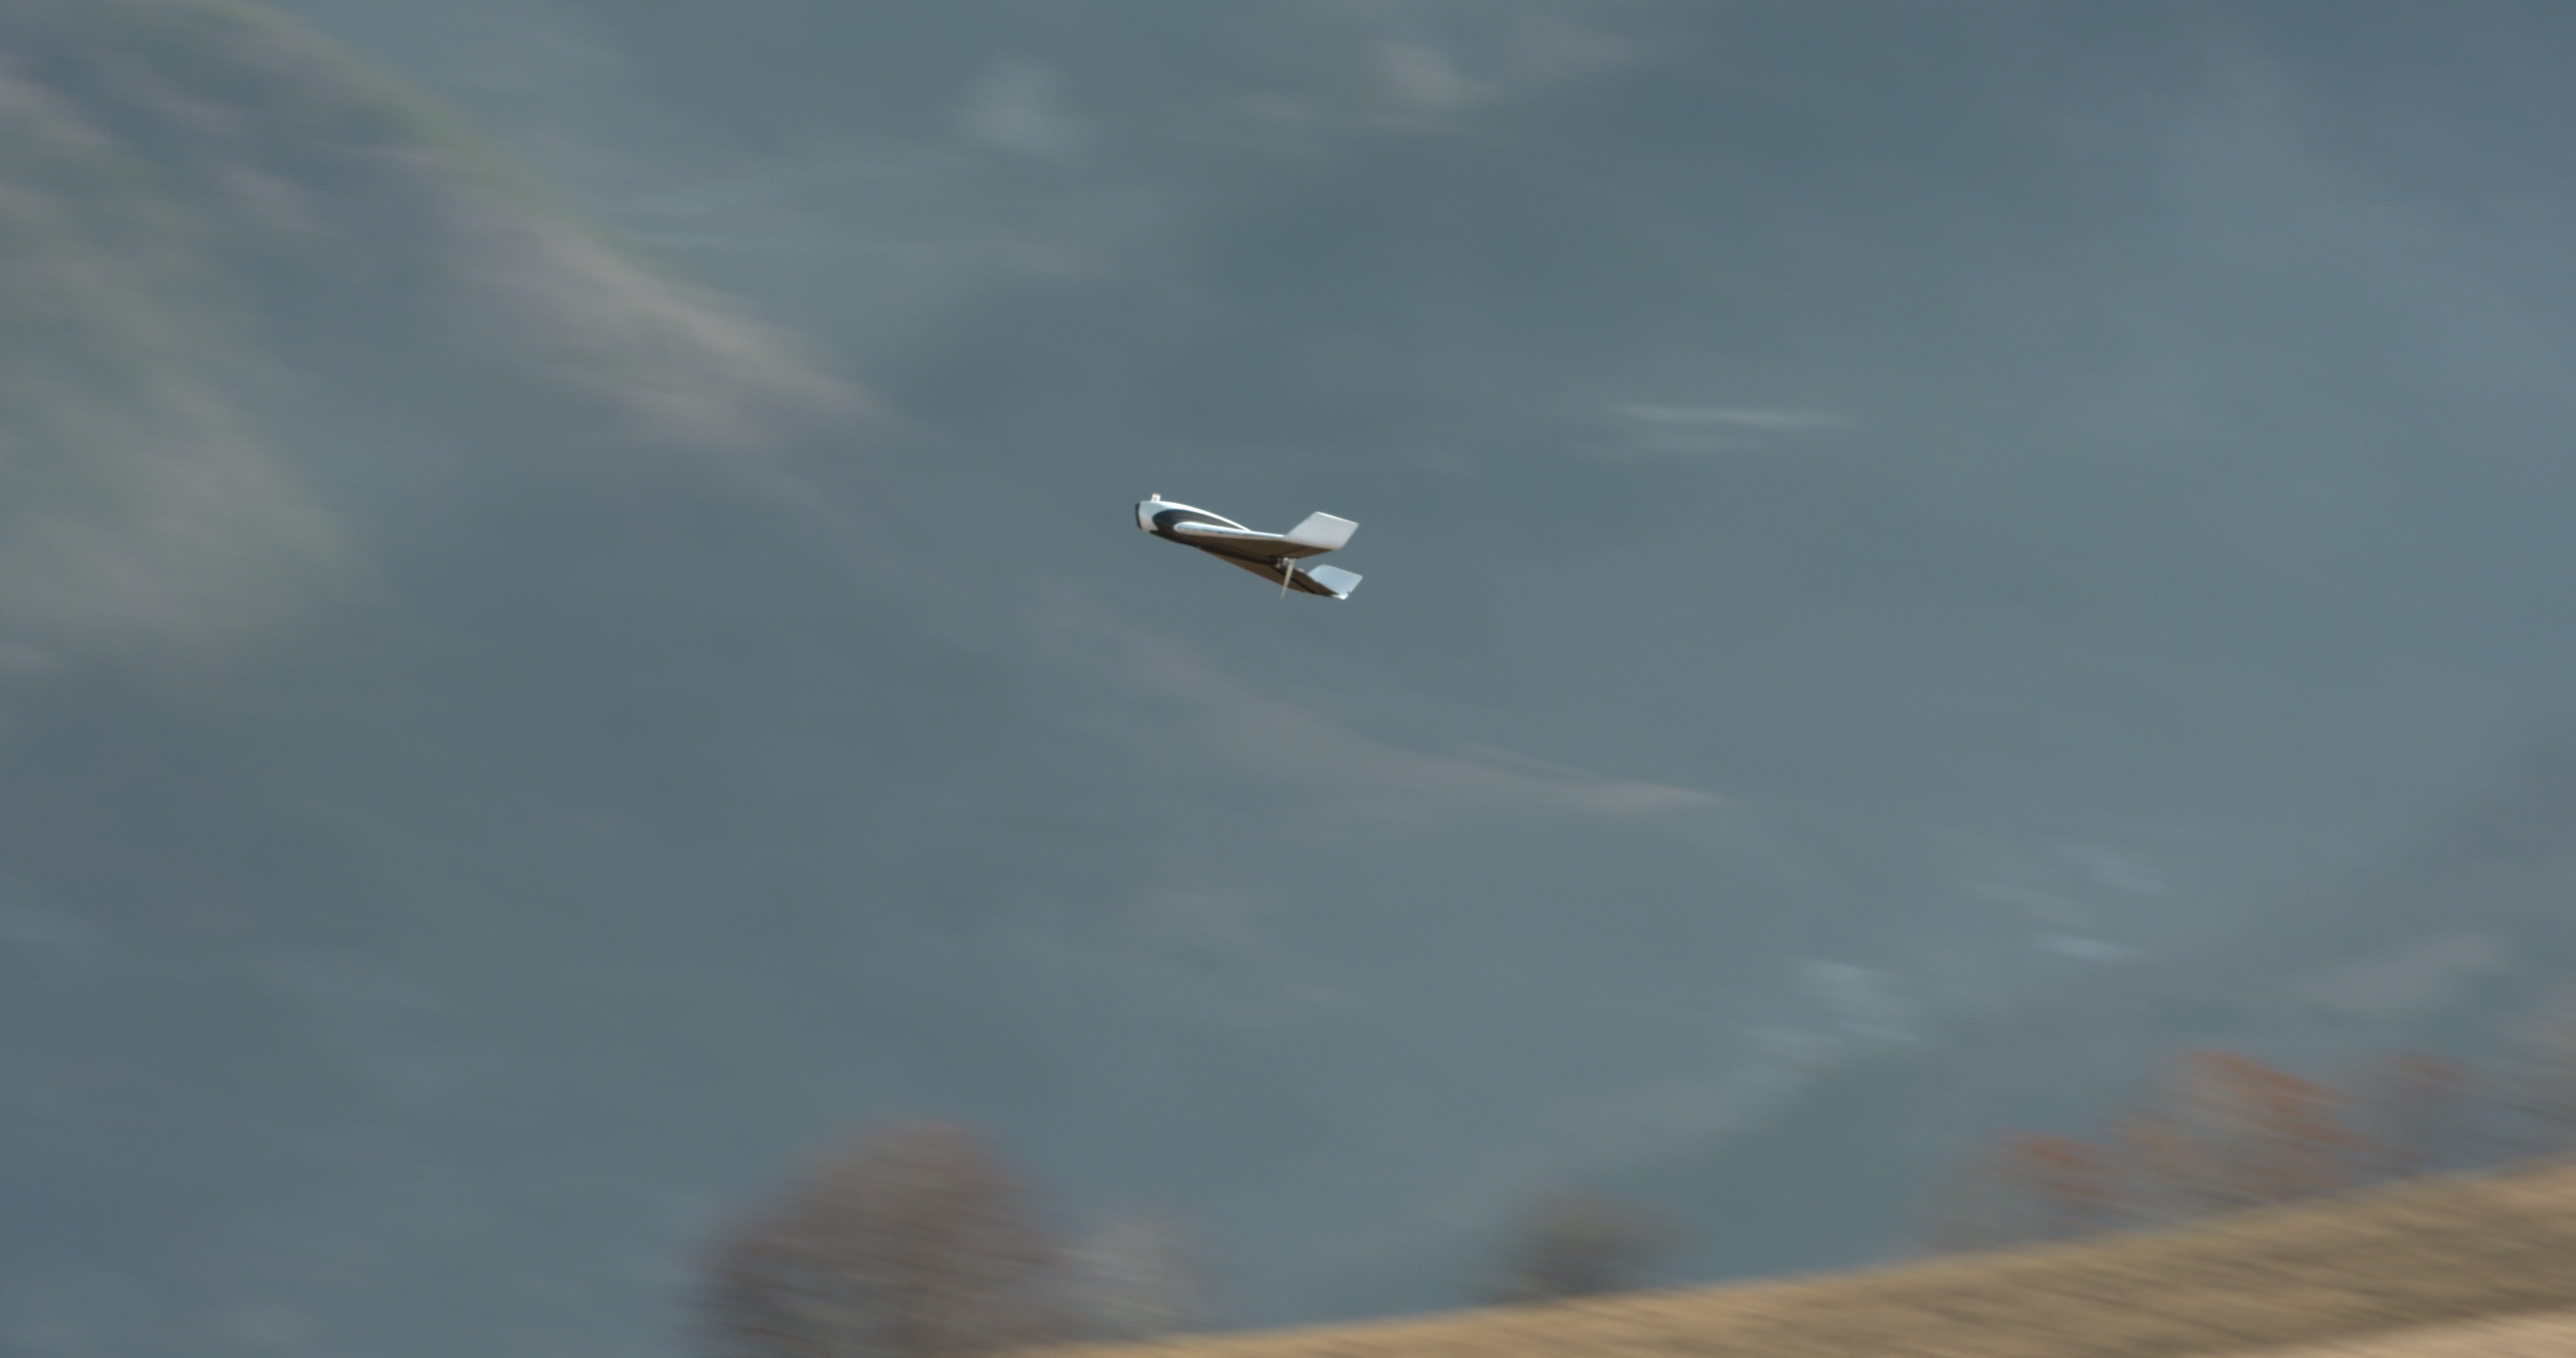 Parrot's Disco drone in flight